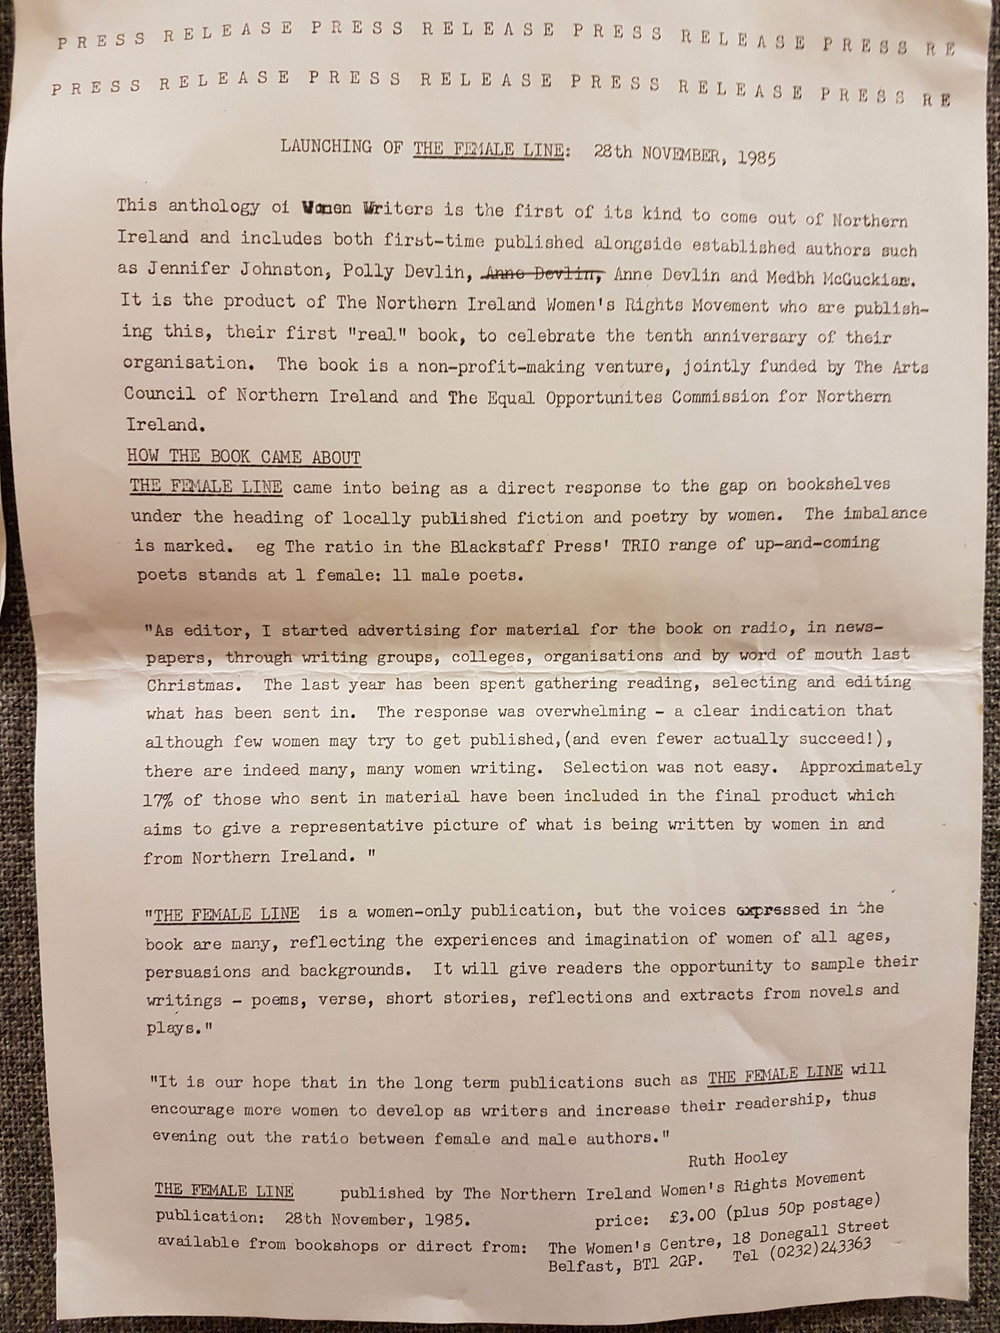 Press release for launch of  The Female Line  in November 1985